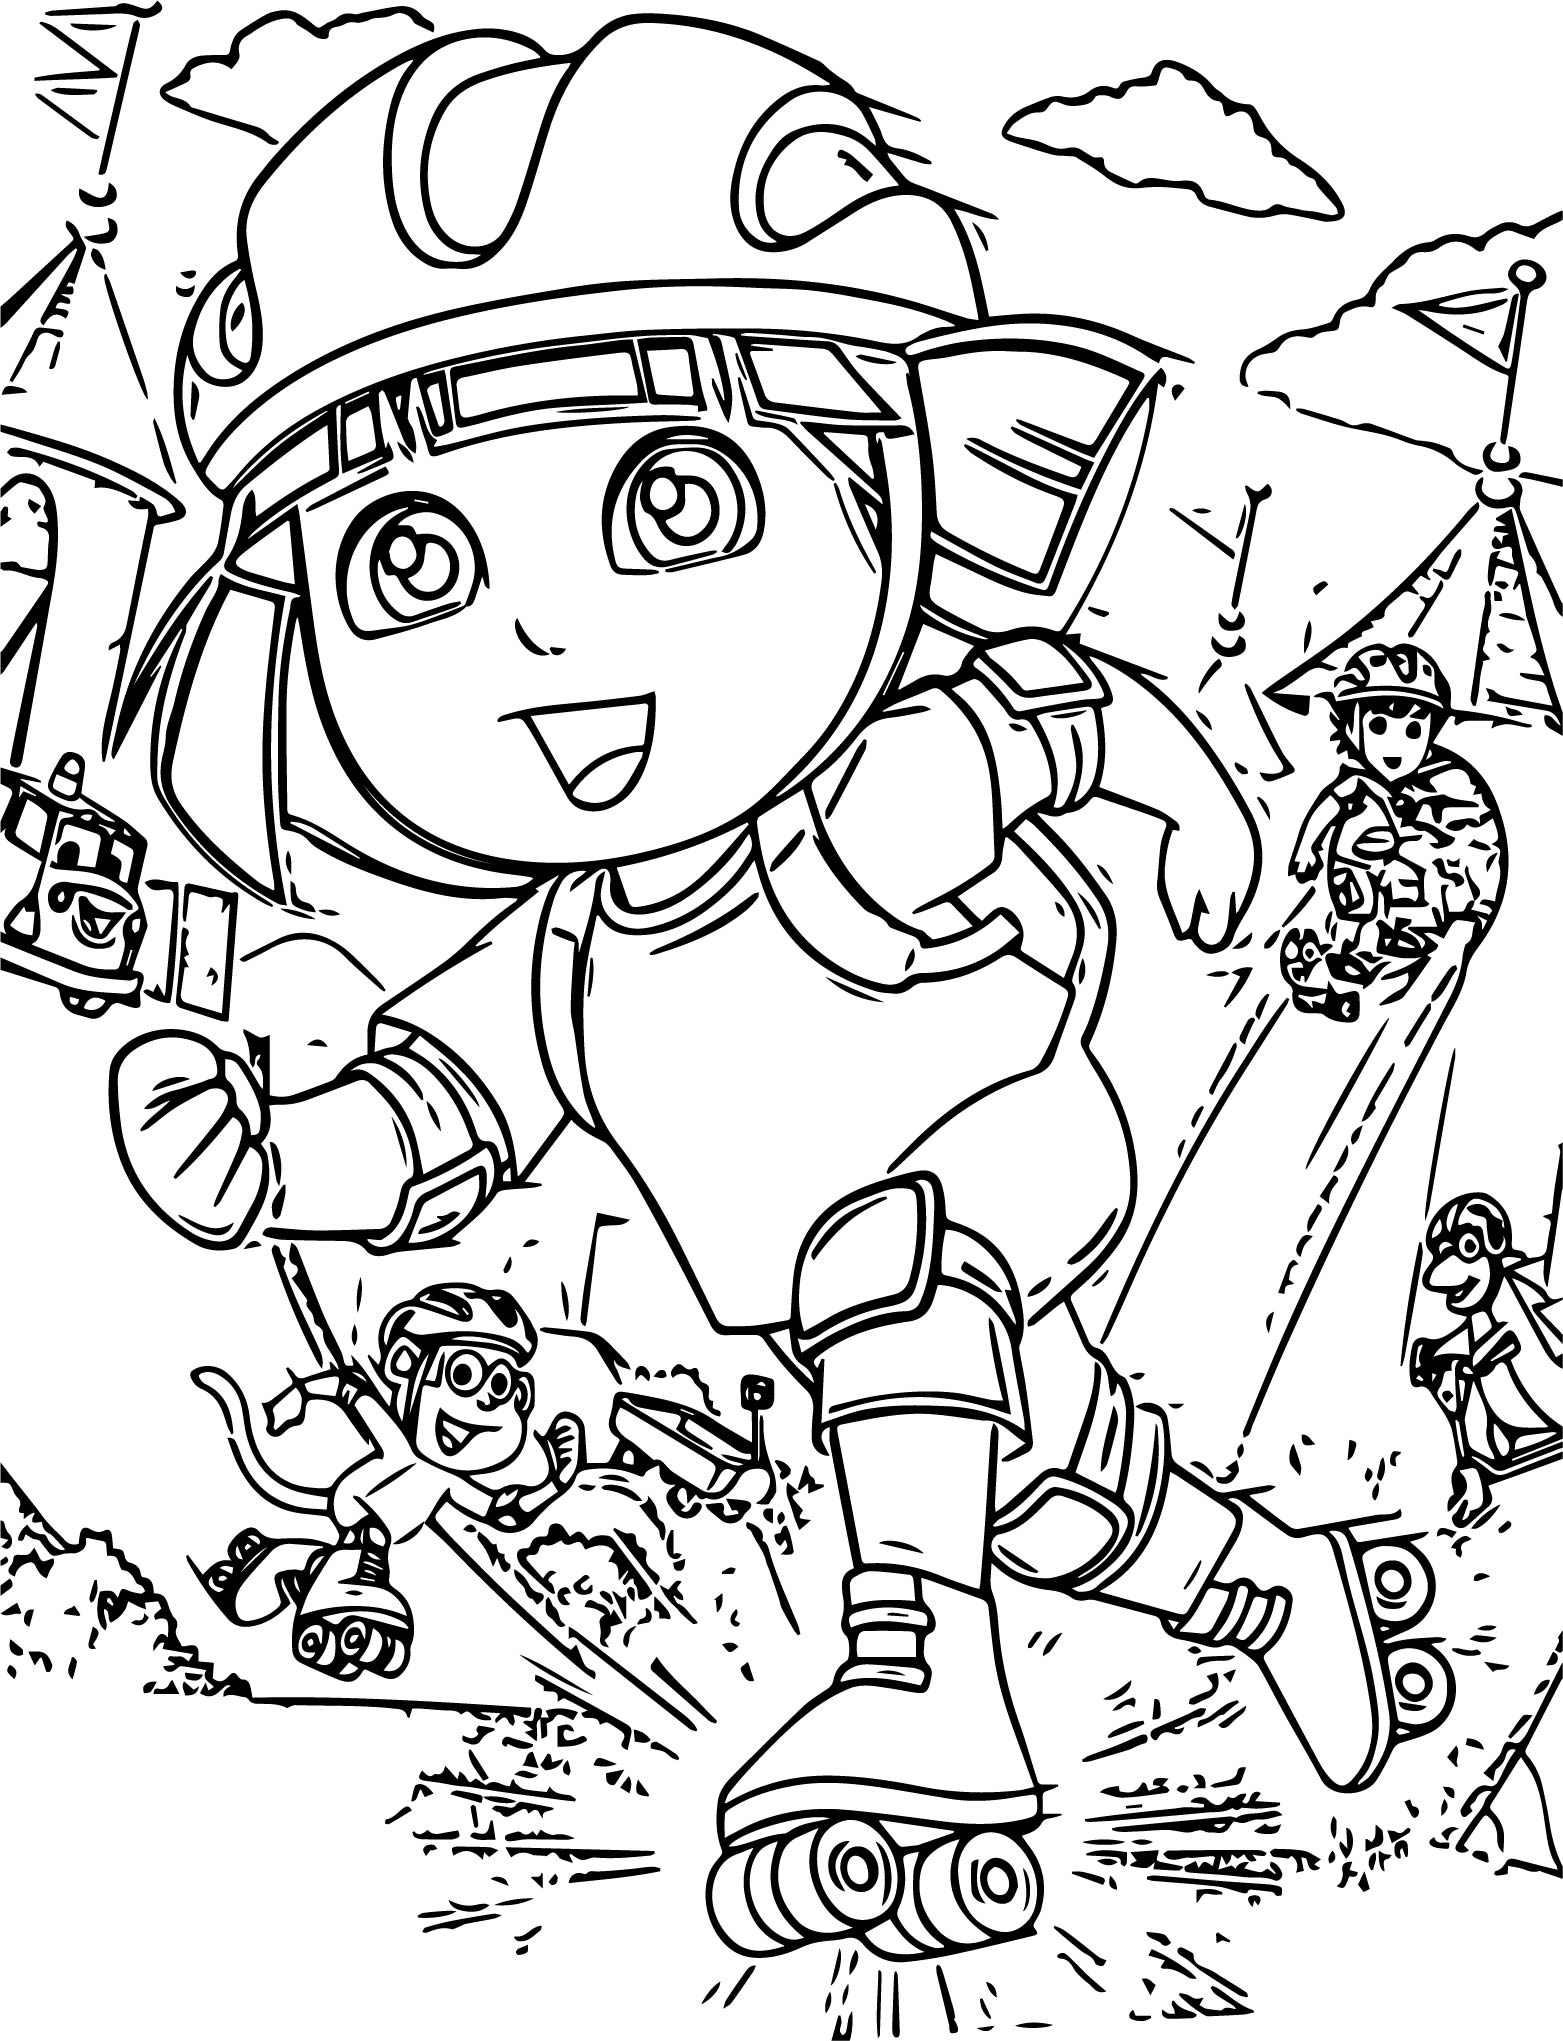 Dora Rollerskate Coloring Page Wecoloringpage Com